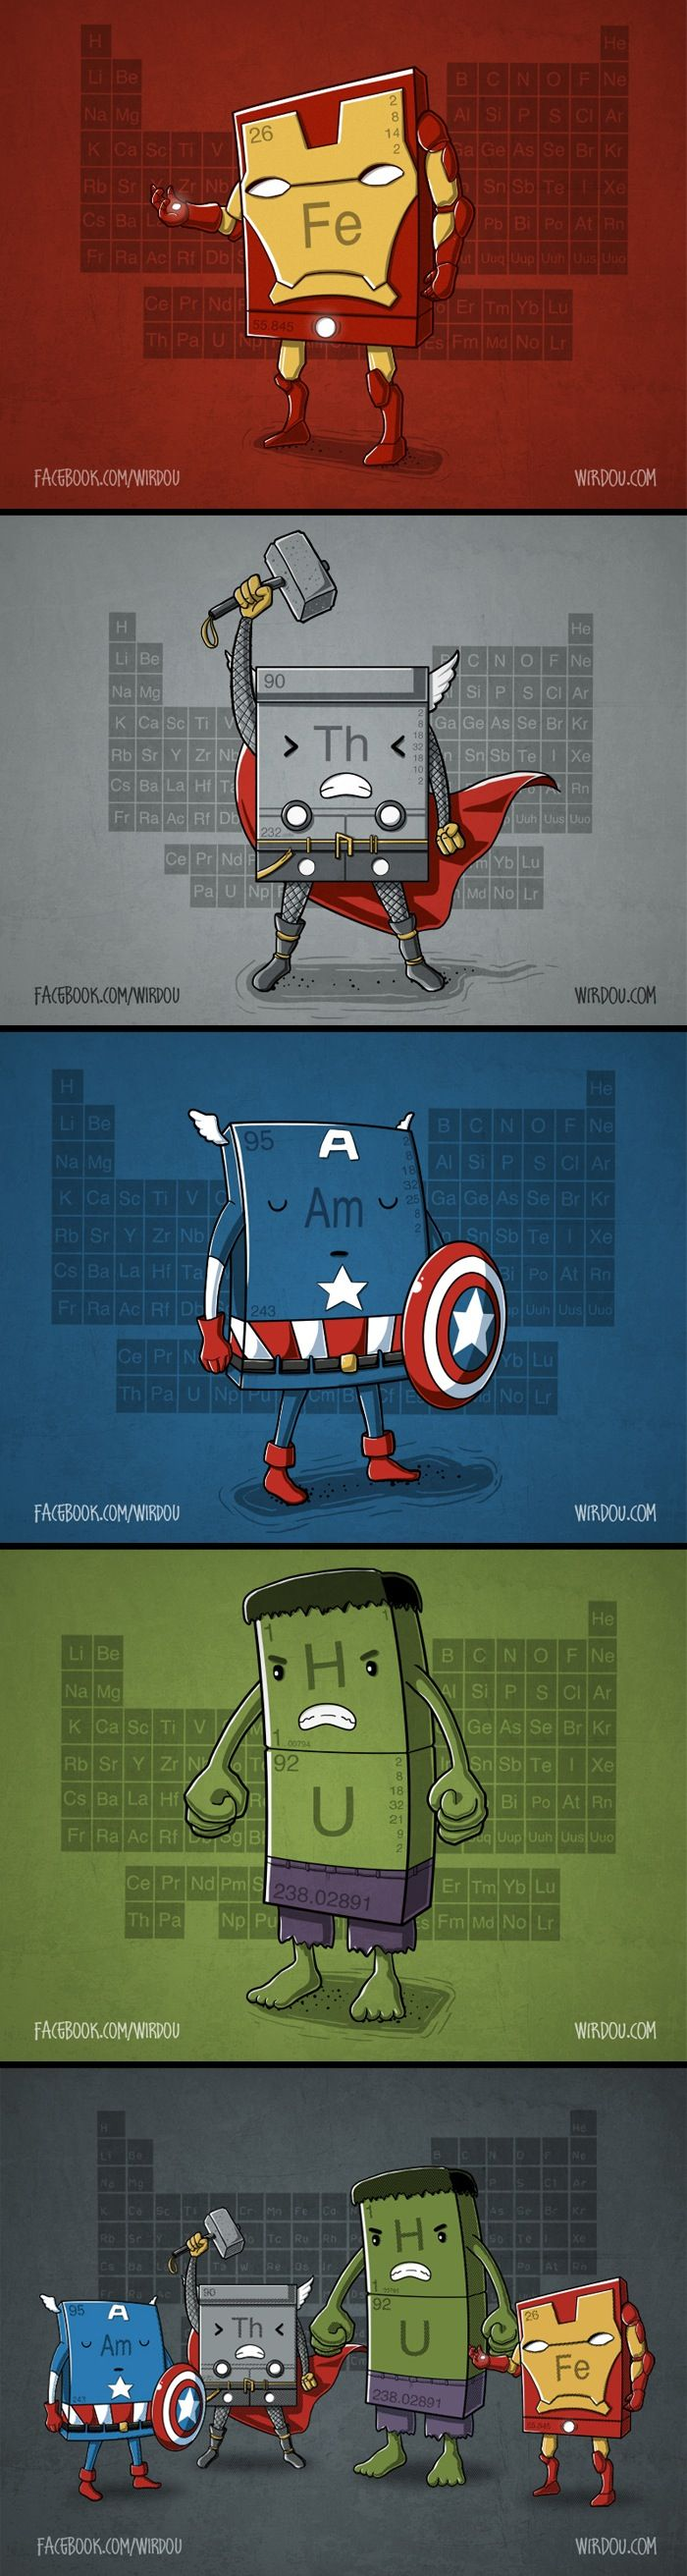 Avengers Quimicos